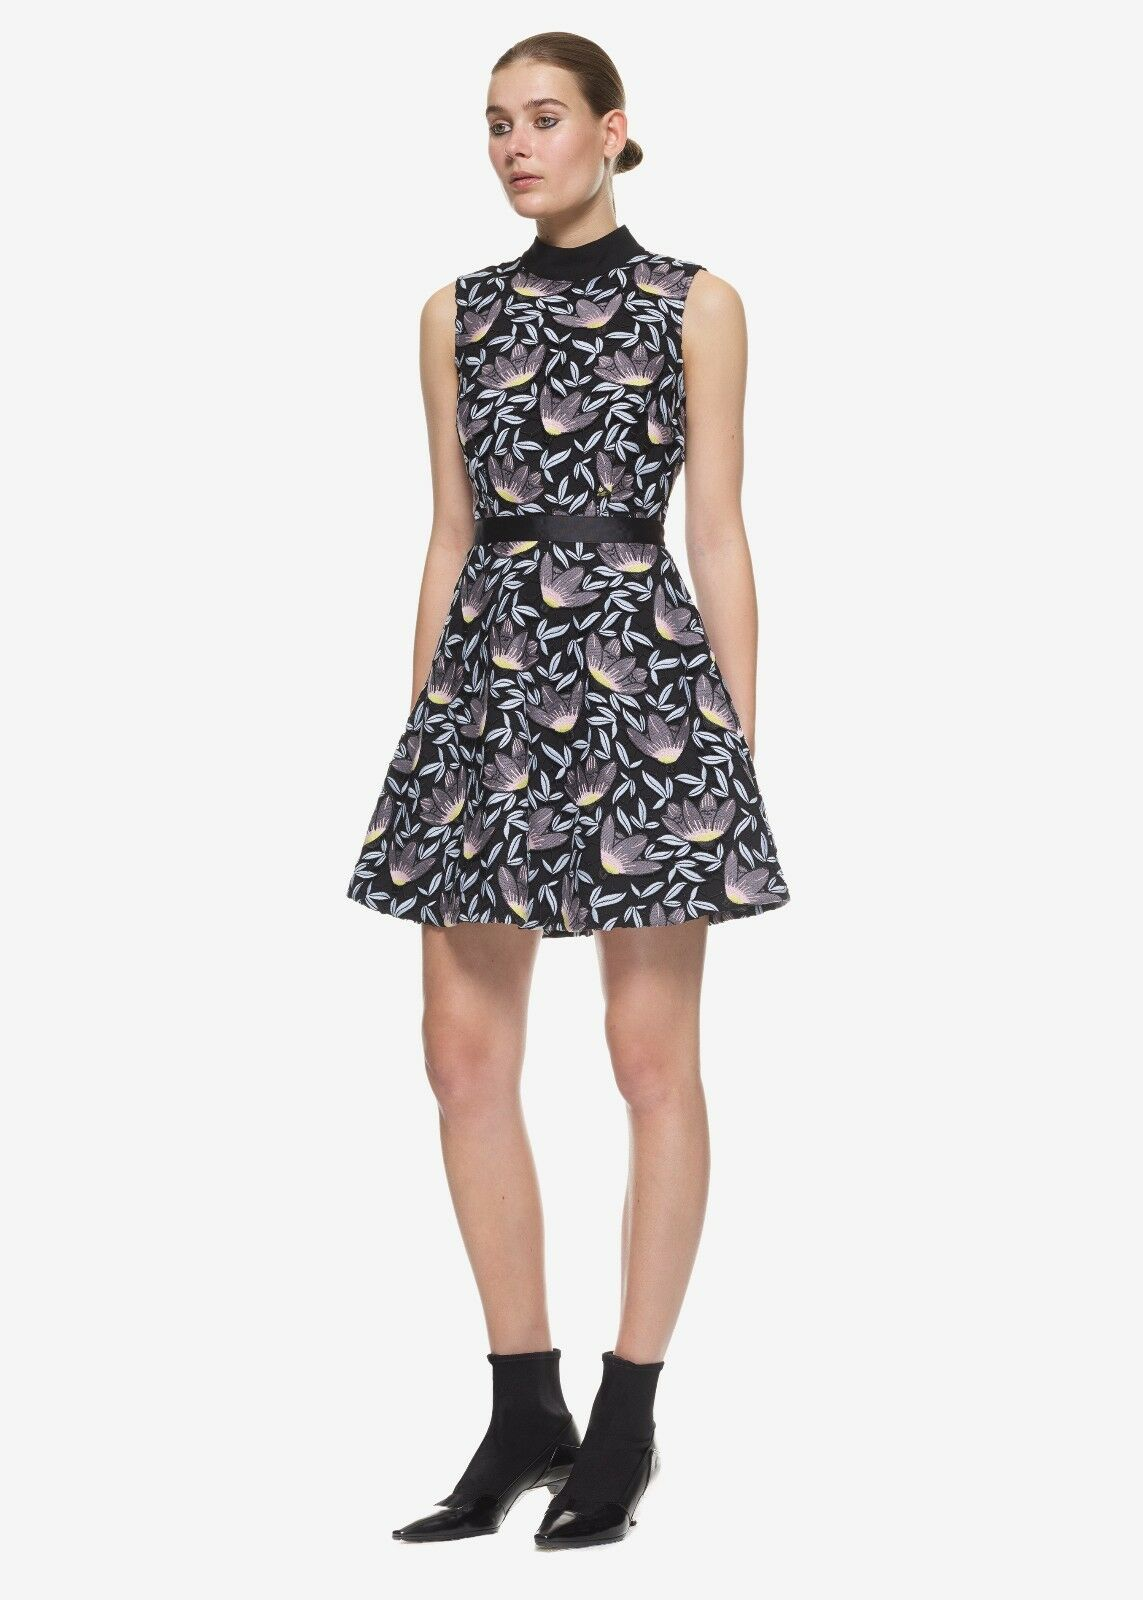 Self Portrait 4 Baby bluee Peony Fit & Flare Lace Embroidered Mini Dress